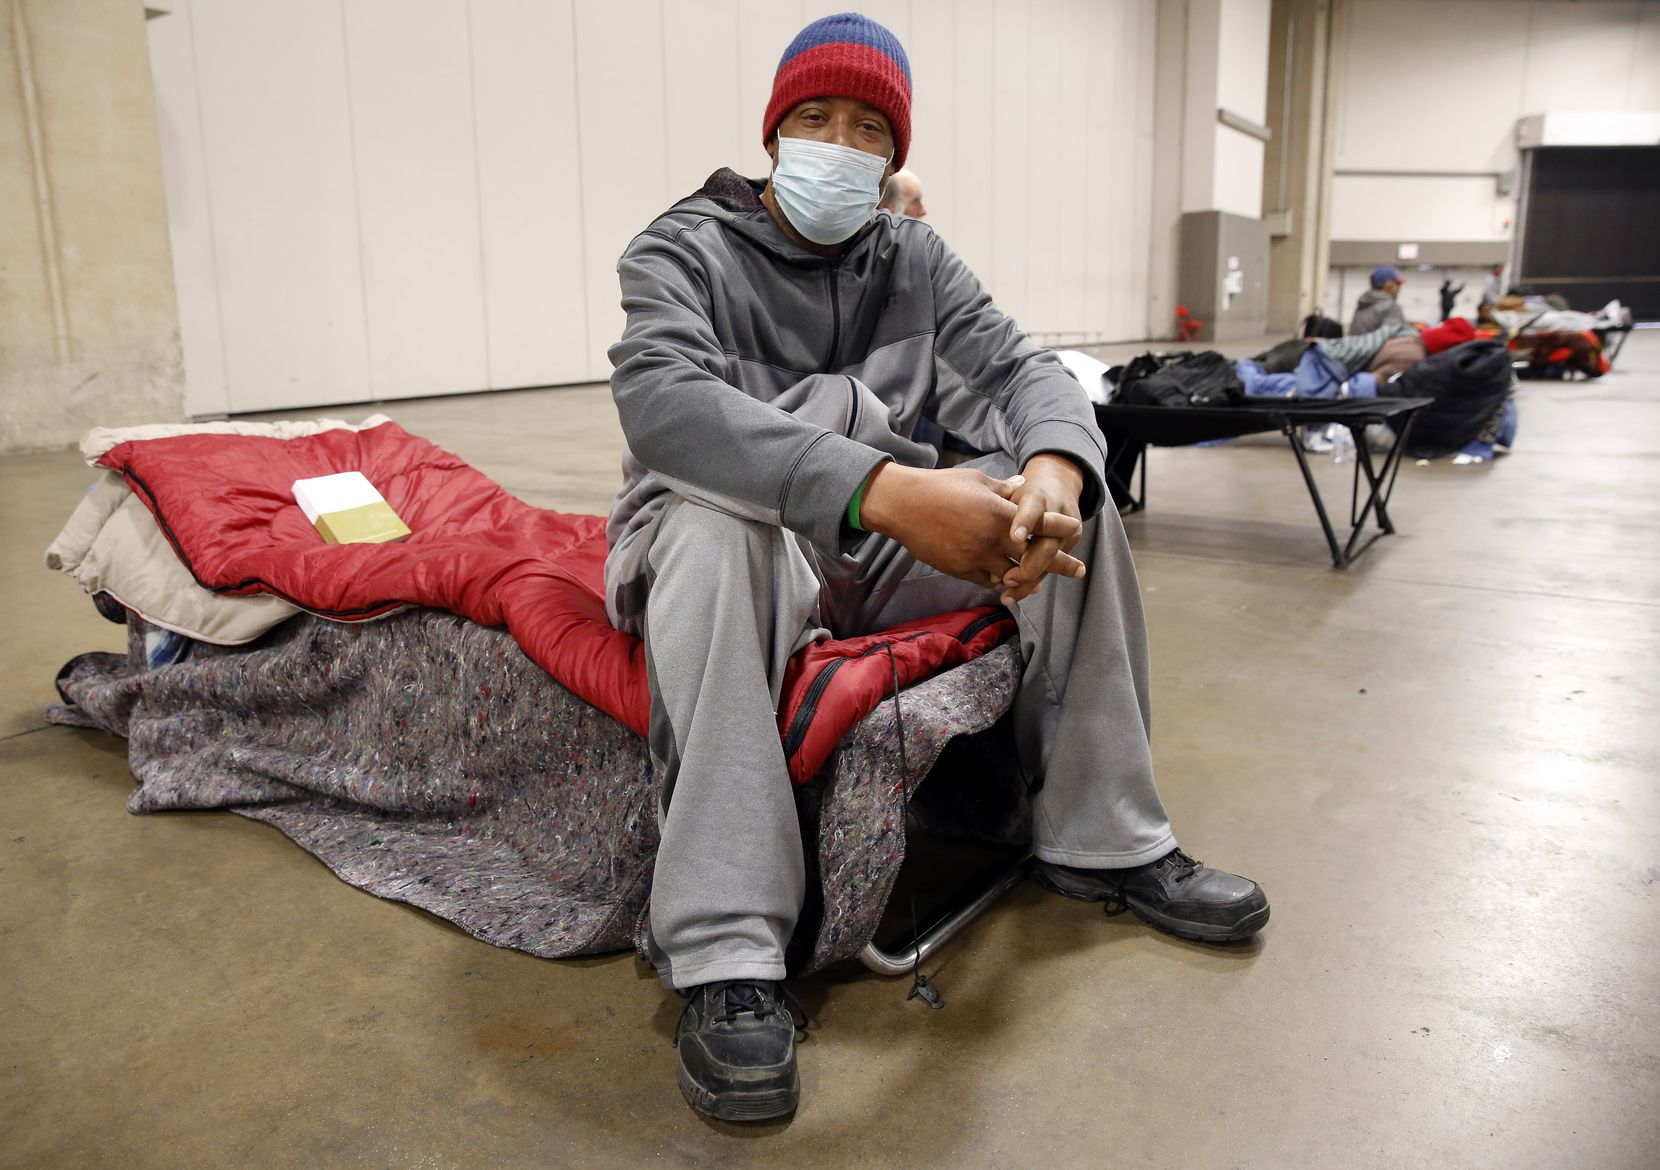 Pierre Scott, a 59 year-old guest and volunteer at a warming center run by OurCalling, is pictured on his socially-distanced cot at the Kay Bailey Hutchison Convention Center in Dallas, Tuesday, February 16, 2021. Scott like a lot of other folks, found refuge from the overnight sub-zero temperatures. (Tom Fox/The Dallas Morning News)